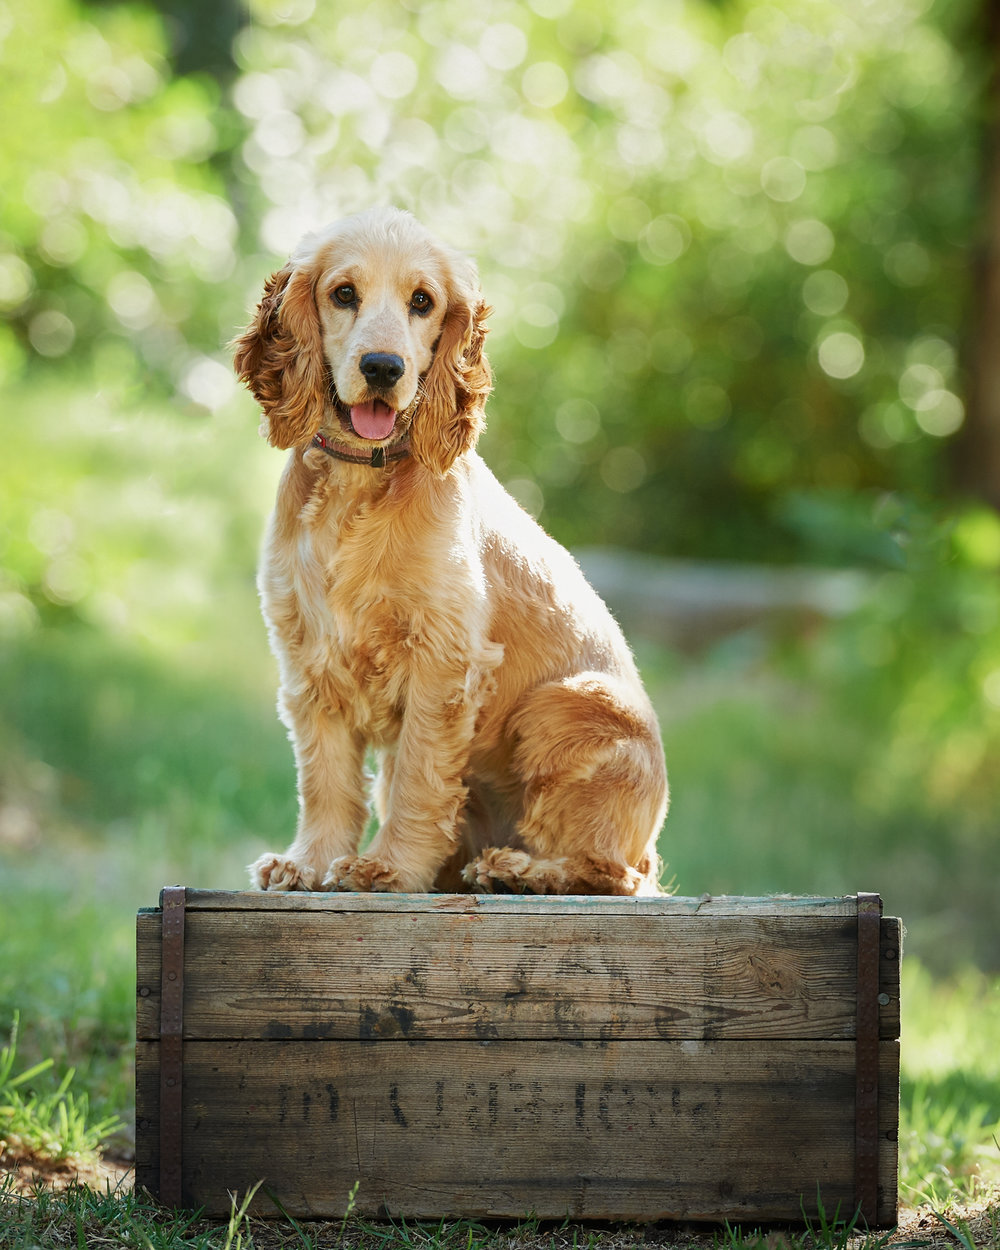 cocker_spaniel_Pet_dog_four_paws_portrait